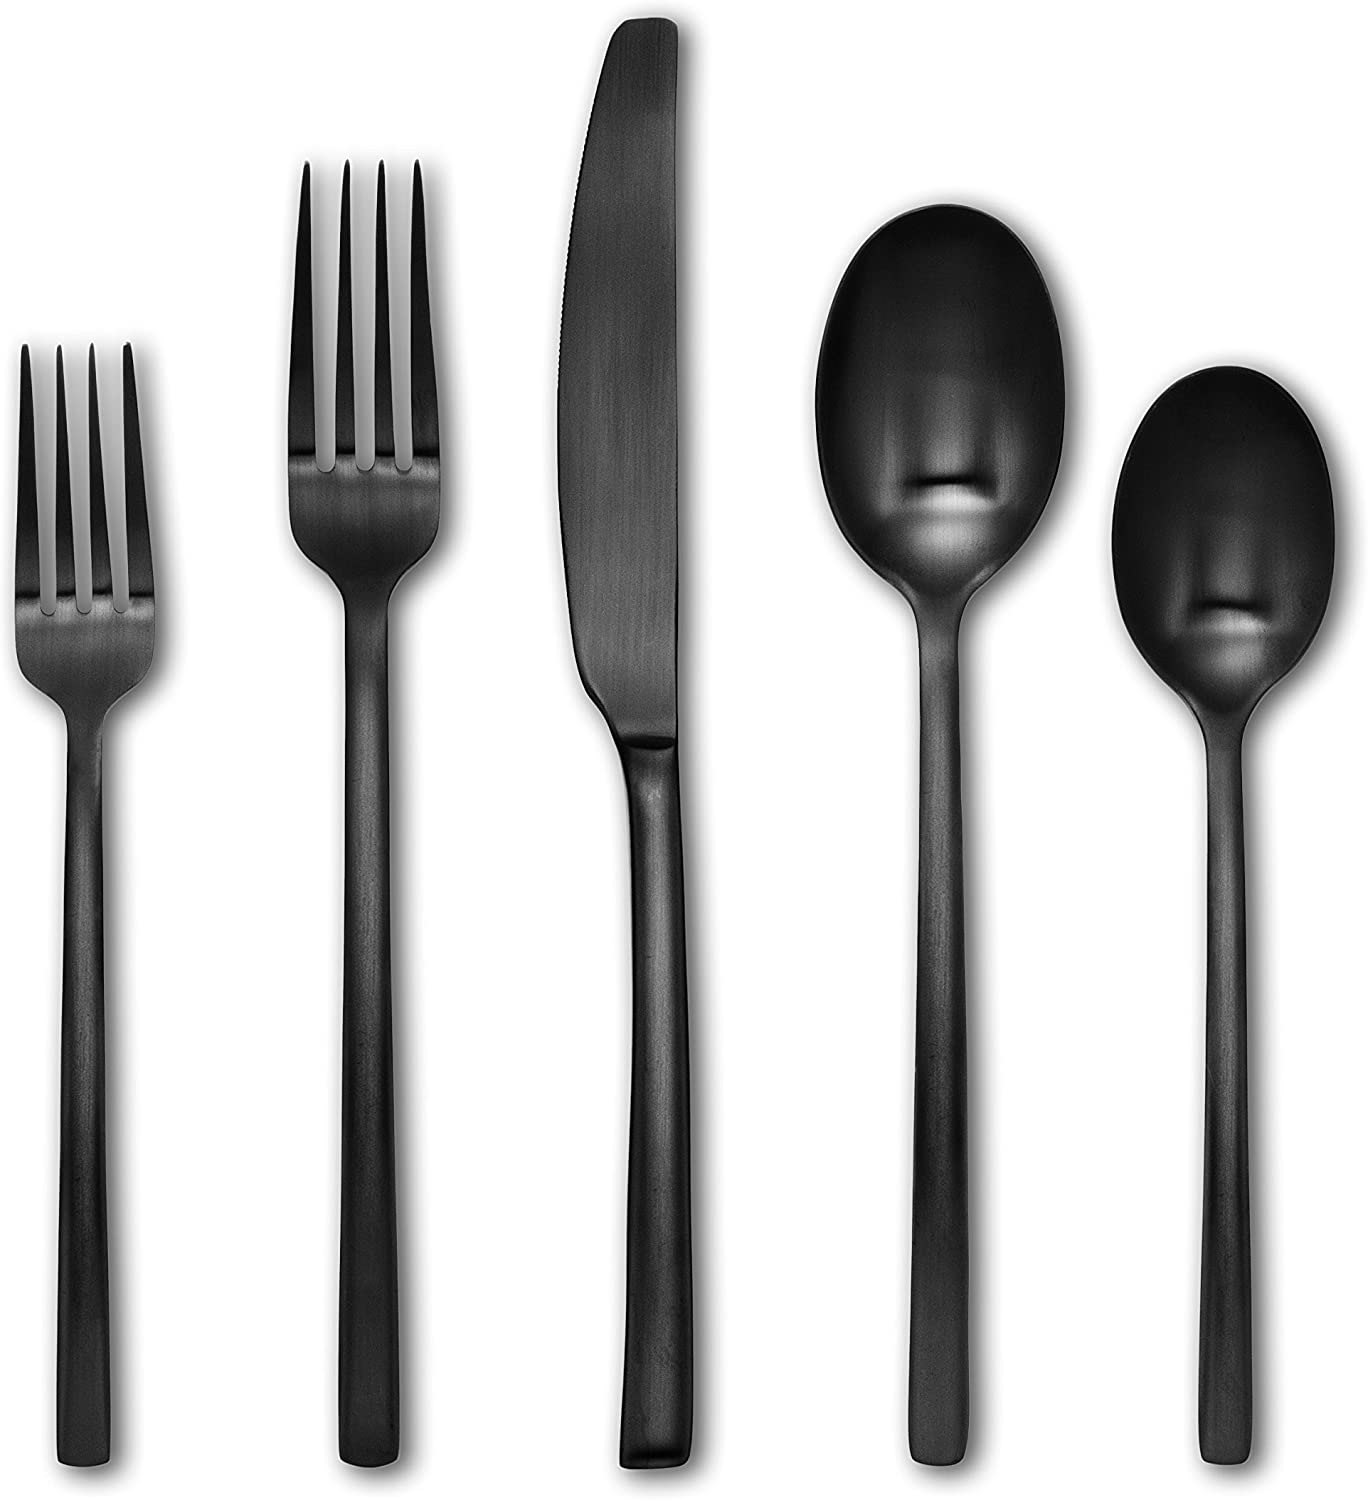 Cambridge Silversmiths 286620HGY12XR Beacon Flatware Silverware Set, Black Satin, Service for 4, Includes Forks/Spoons/Knives, 20 Piece